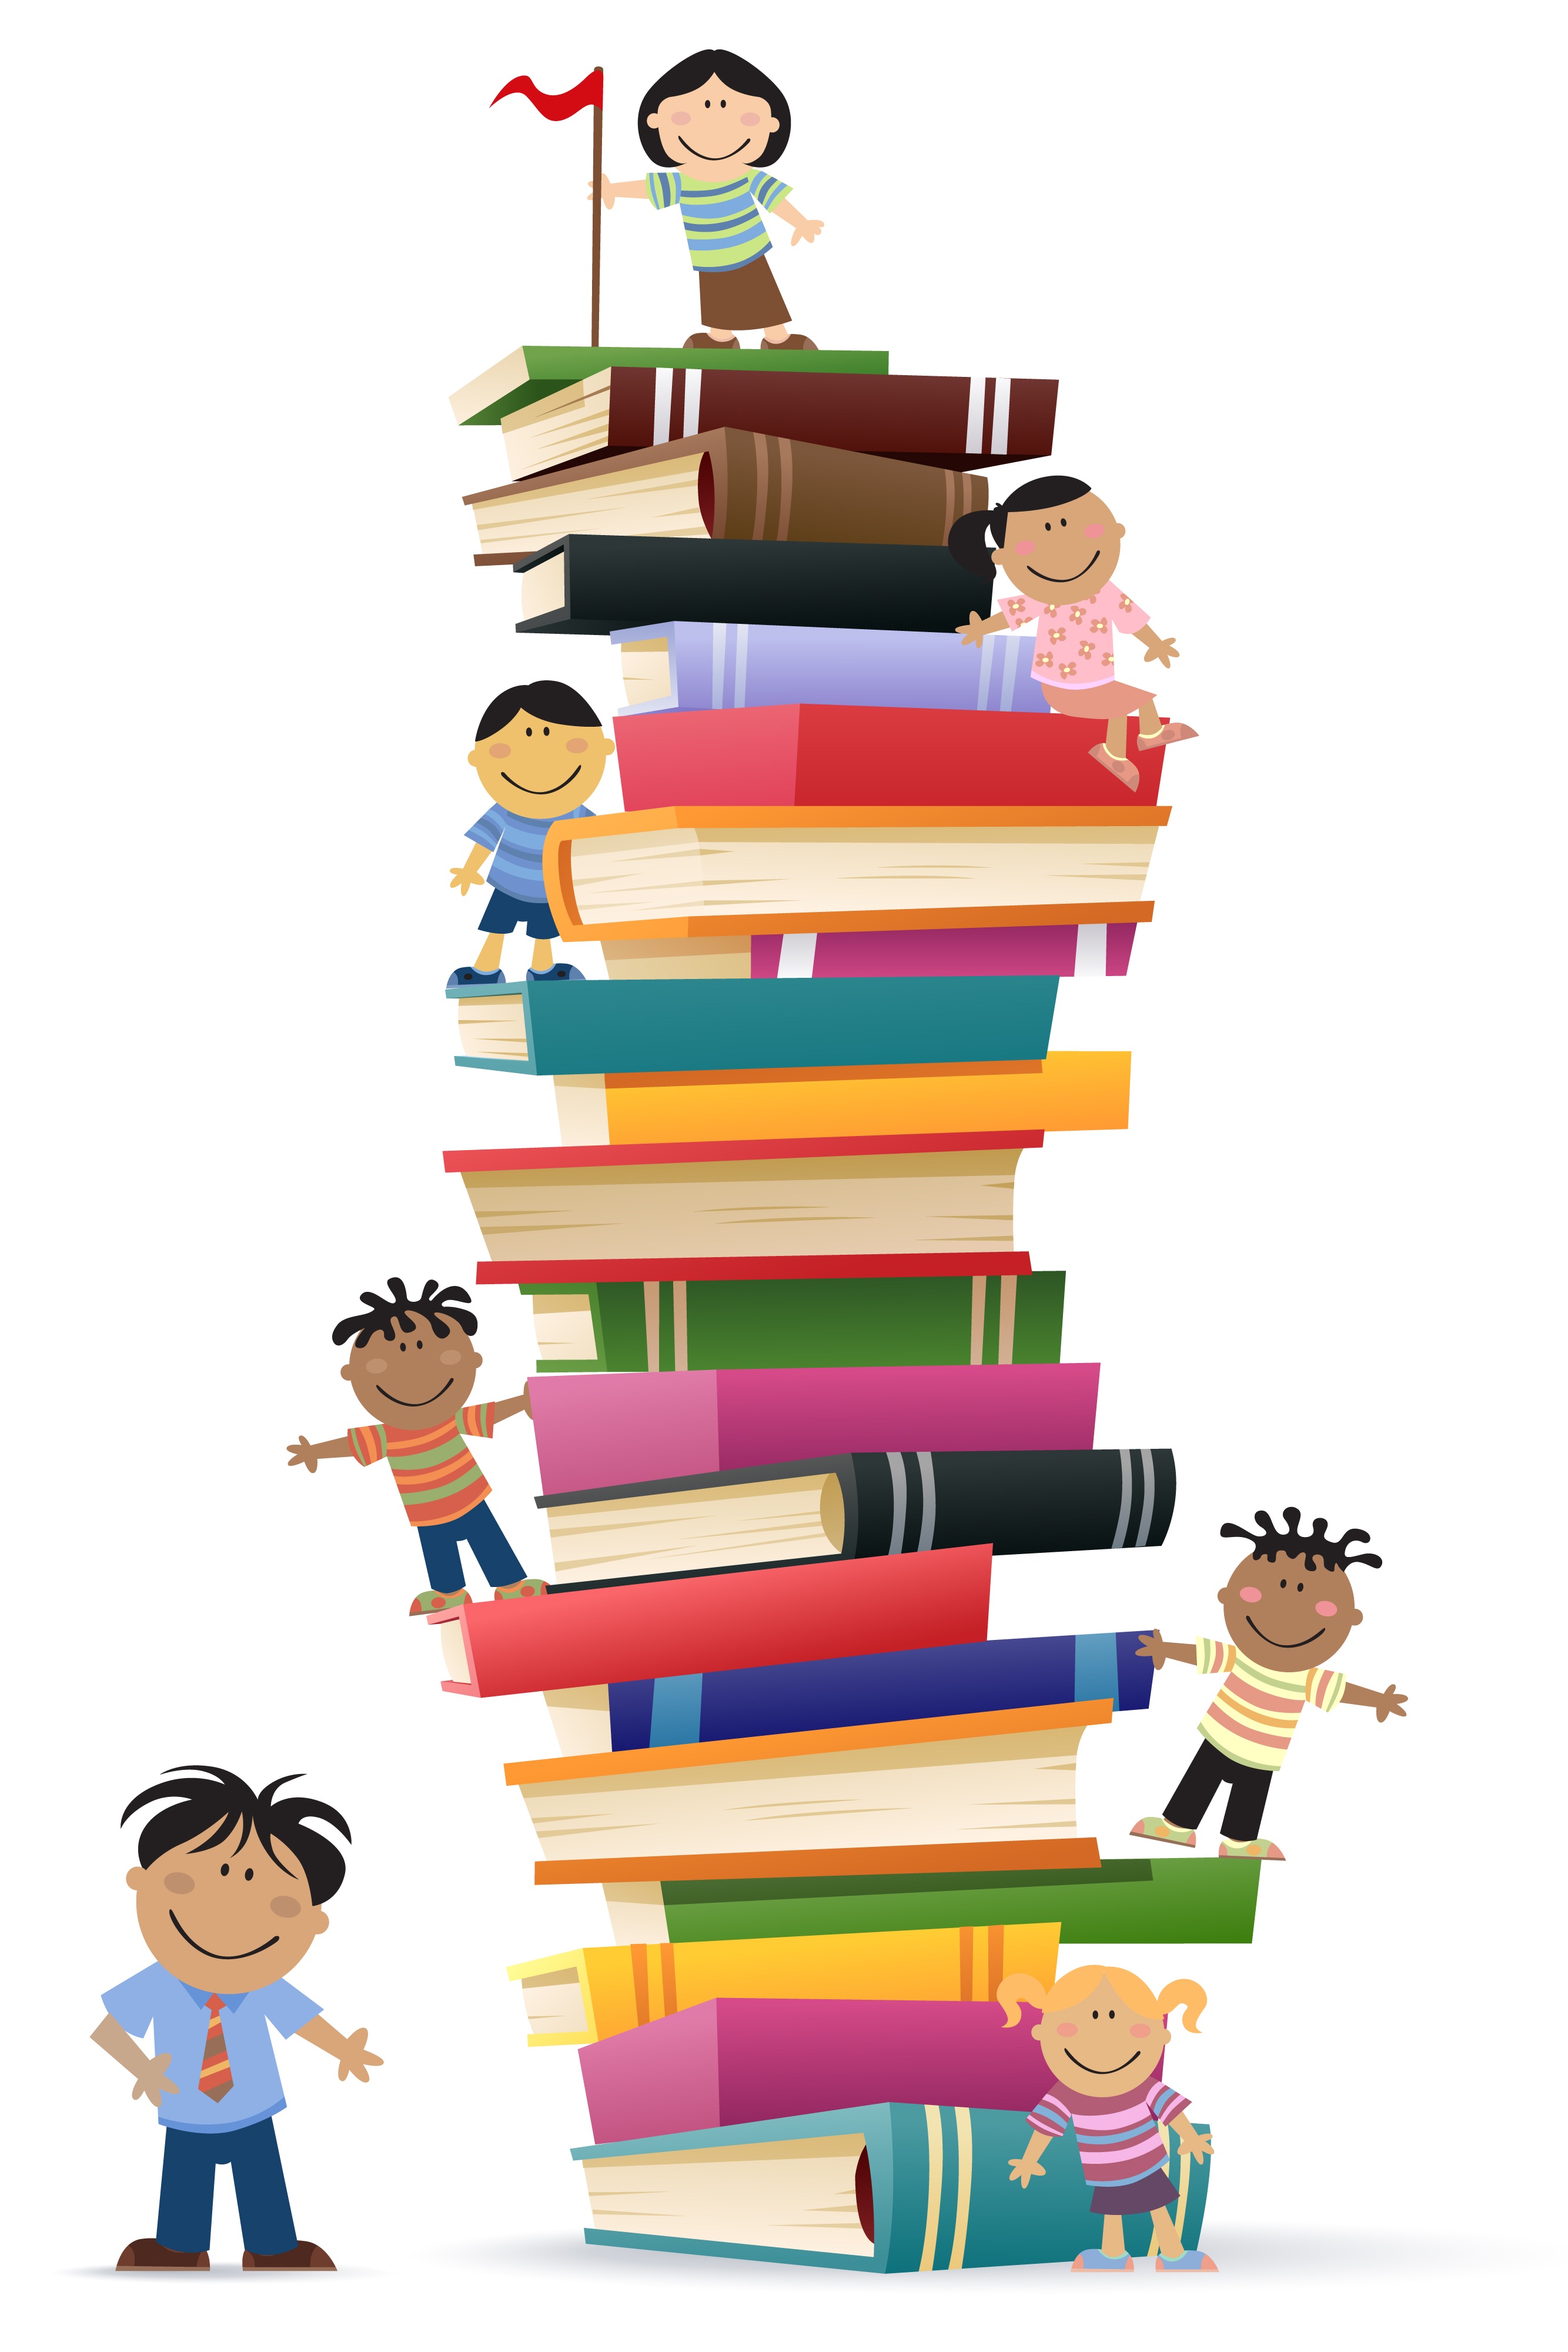 Kids on a pile of books